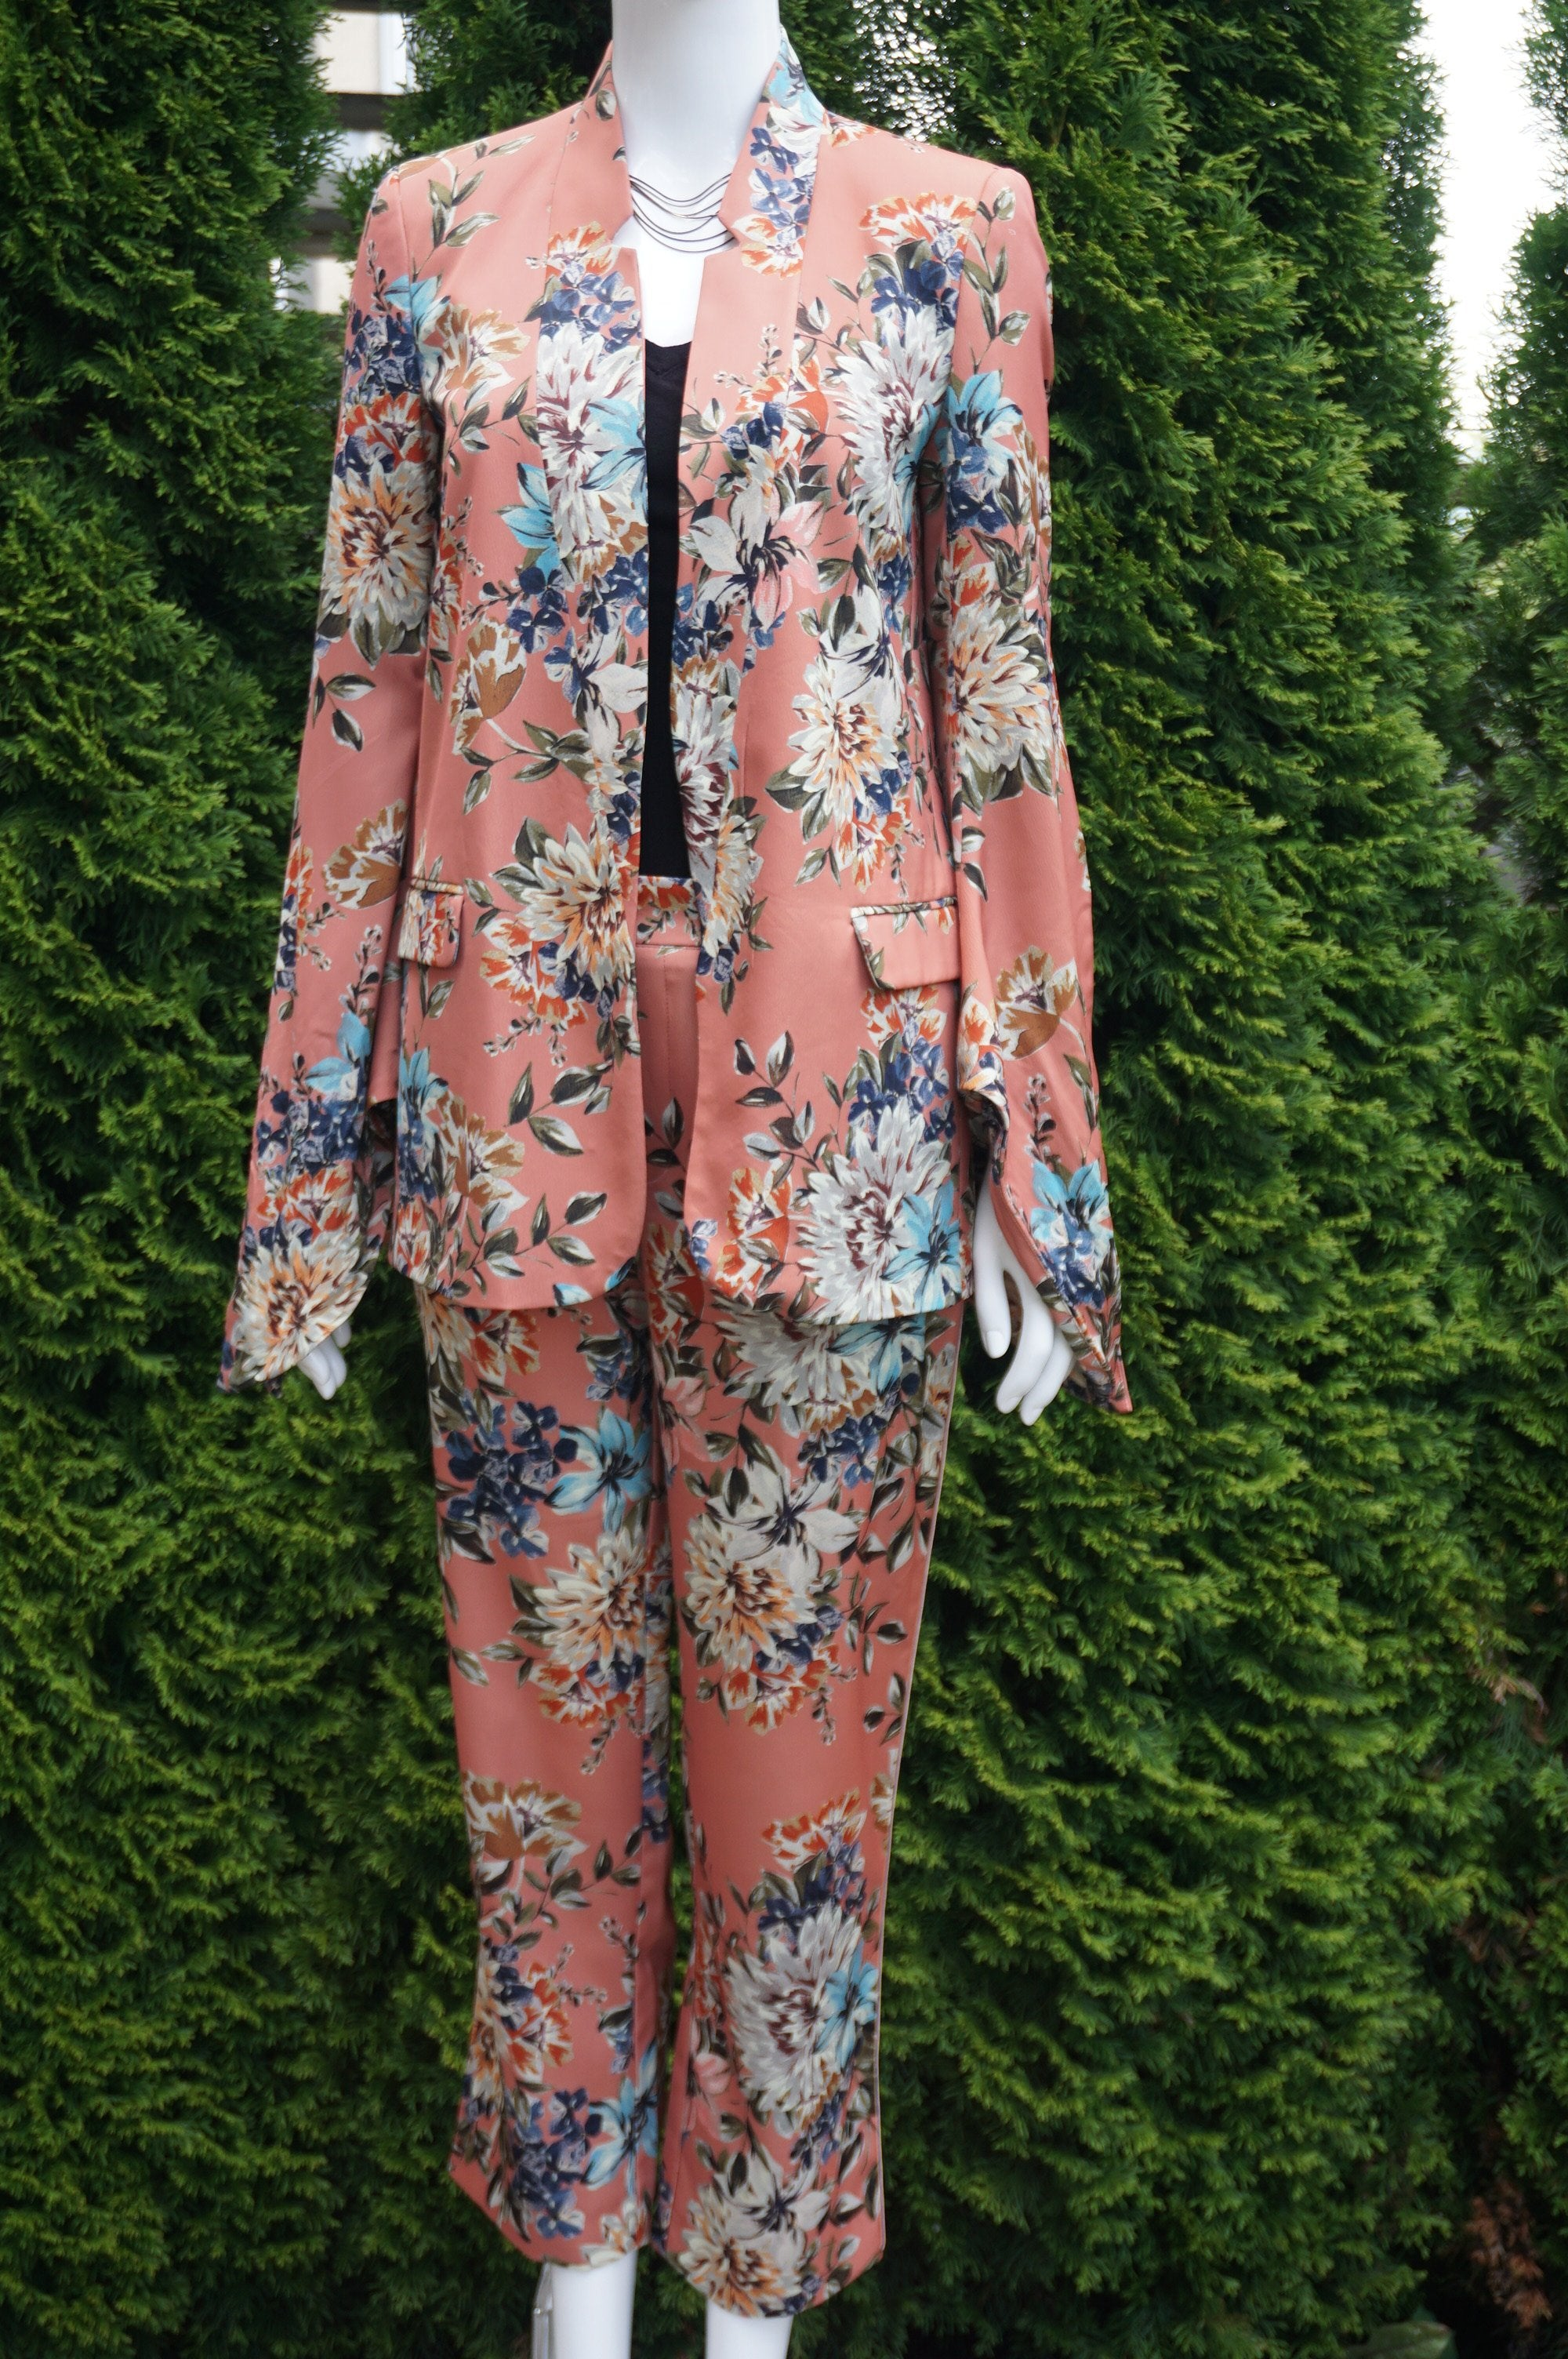 Zara Floral Pant Suit, This unique floral pantsuit helps you take on the world while looking feminine and elegant doing it. Pants length 36 inches, Waist 29 inches, elastic in the back. Suit jacket length 27 inches. Suit shoulder 15 inches. , Pink, women's Jackets & Coats, Pants, women's Pink Jackets & Coats, Pants, Zara women's Jackets & Coats, Pants, women's pantsuit, women's pant suit, floral pink suit